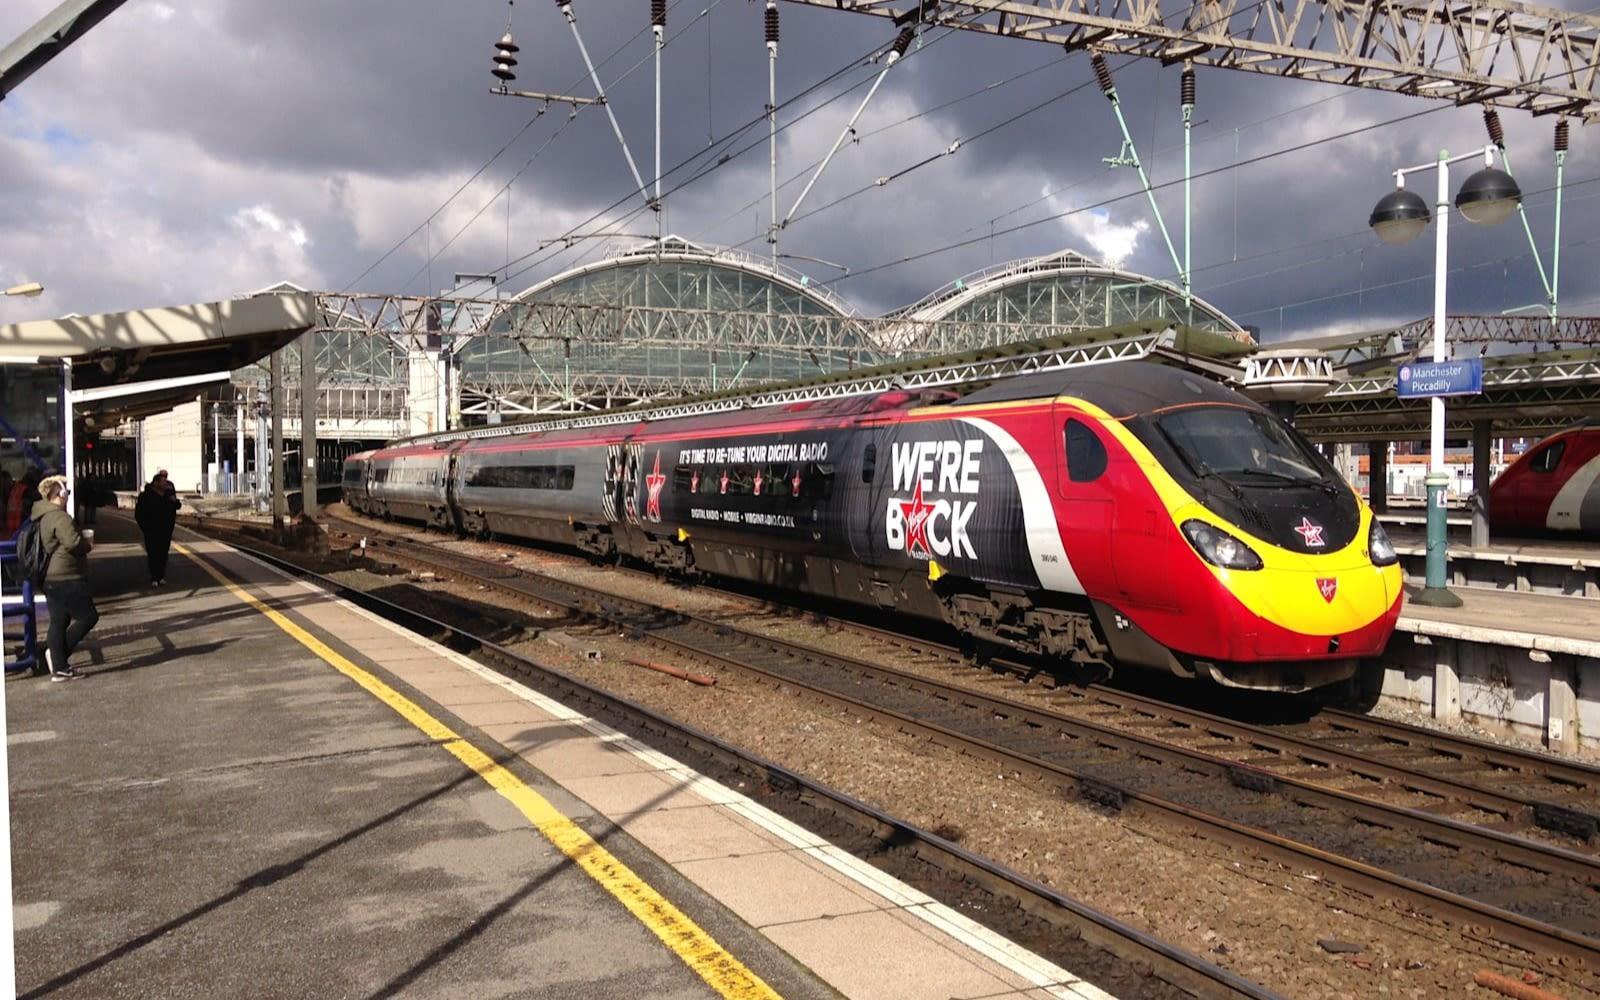 A Virgin Train with We're Back on the side